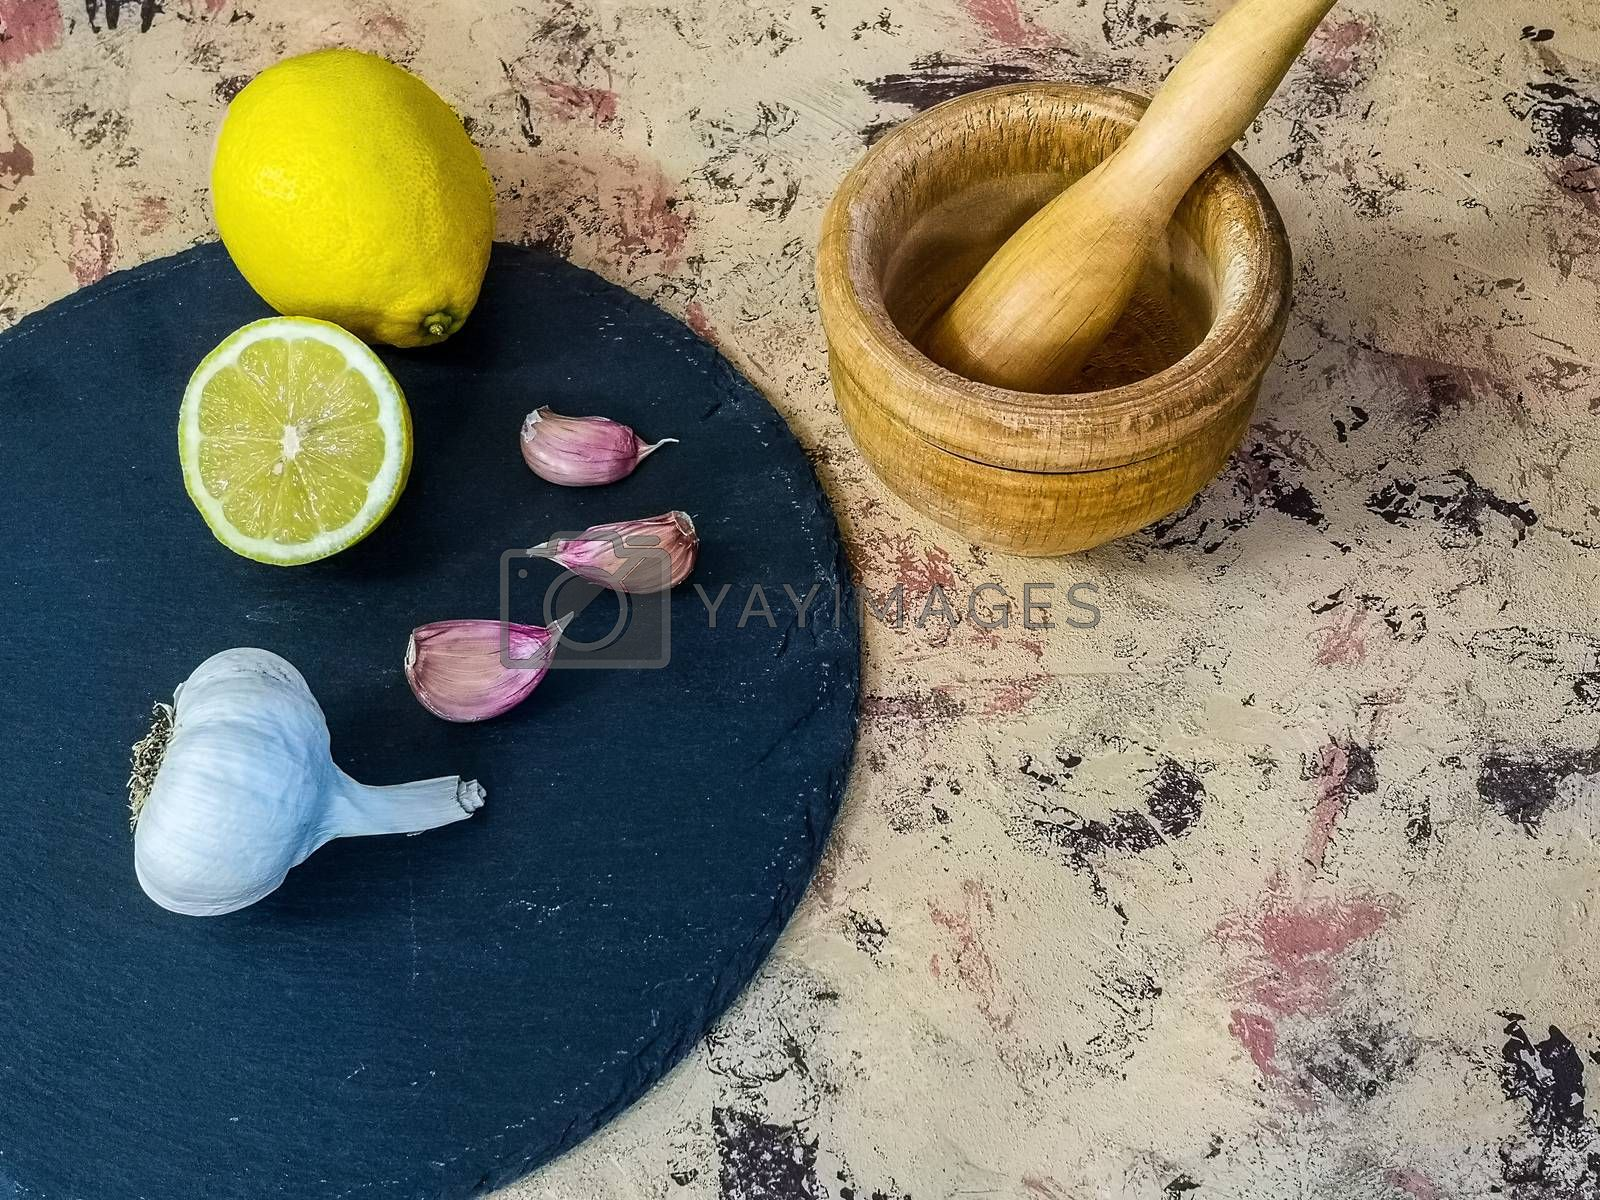 Ingredients and utensils to make mayonnaise with garlic in composition by Barriolo82